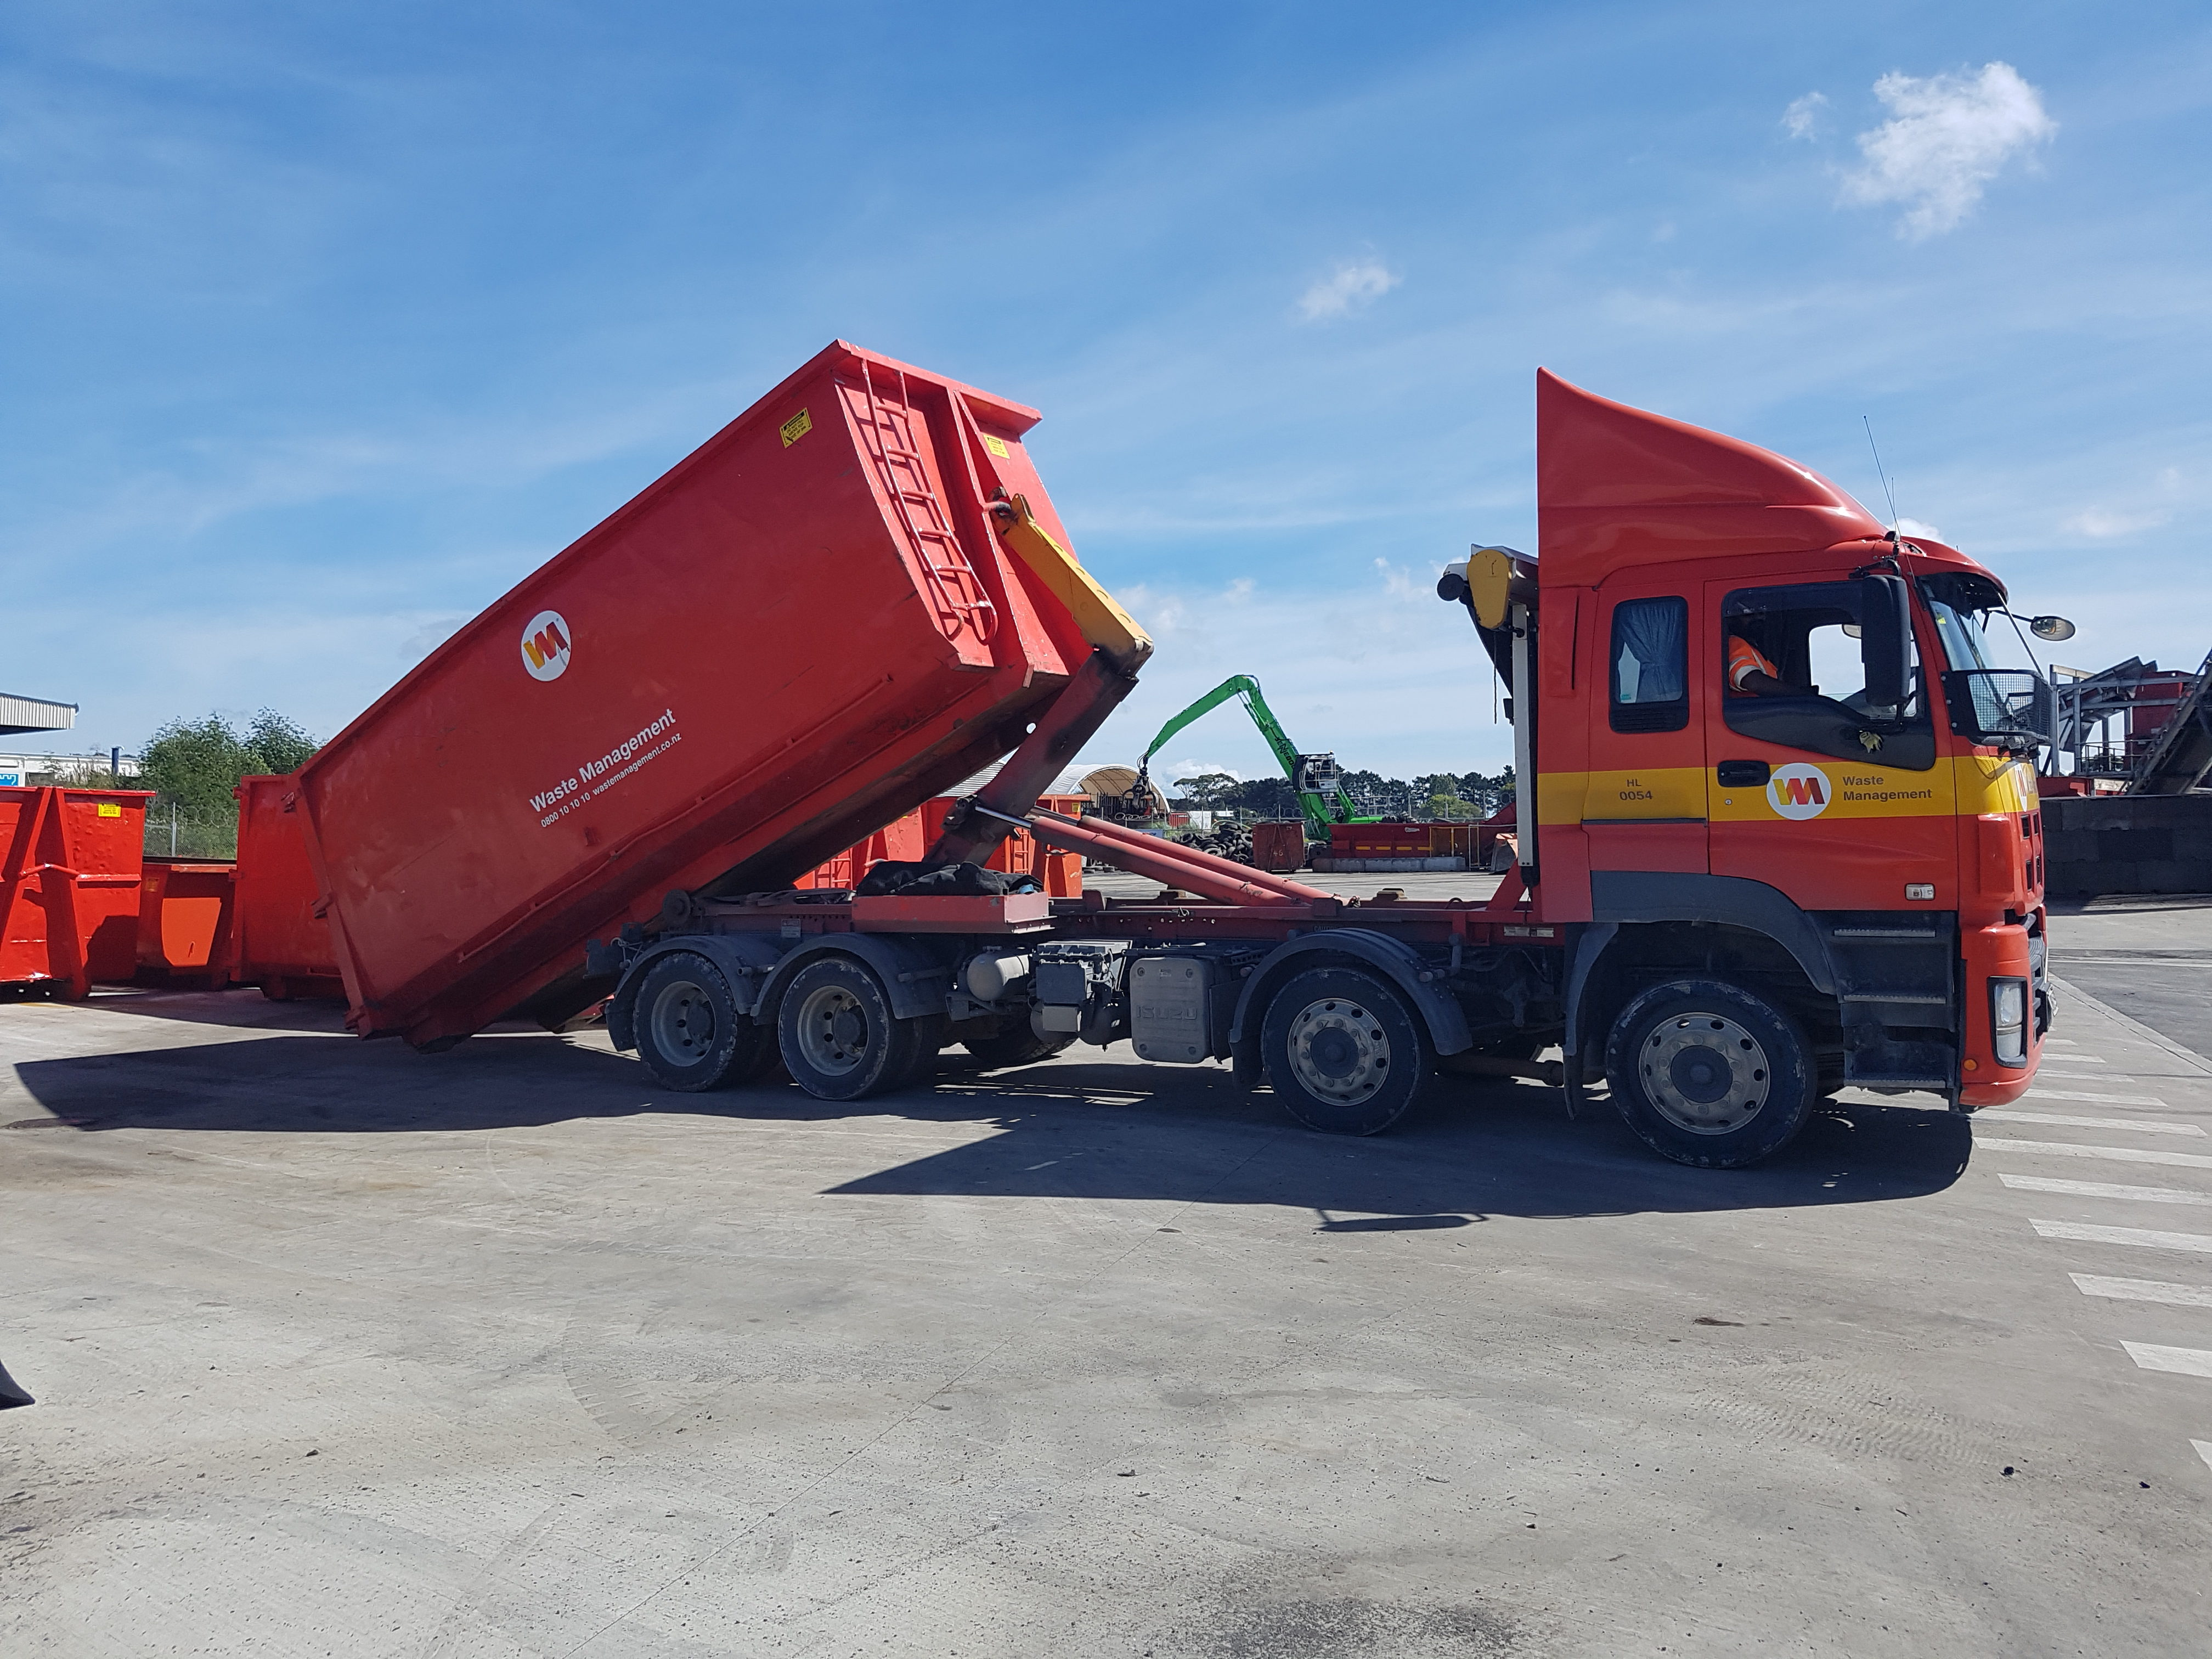 A large truck demonstrates the load bearing ability of Inforce steel fibre concrete slabs